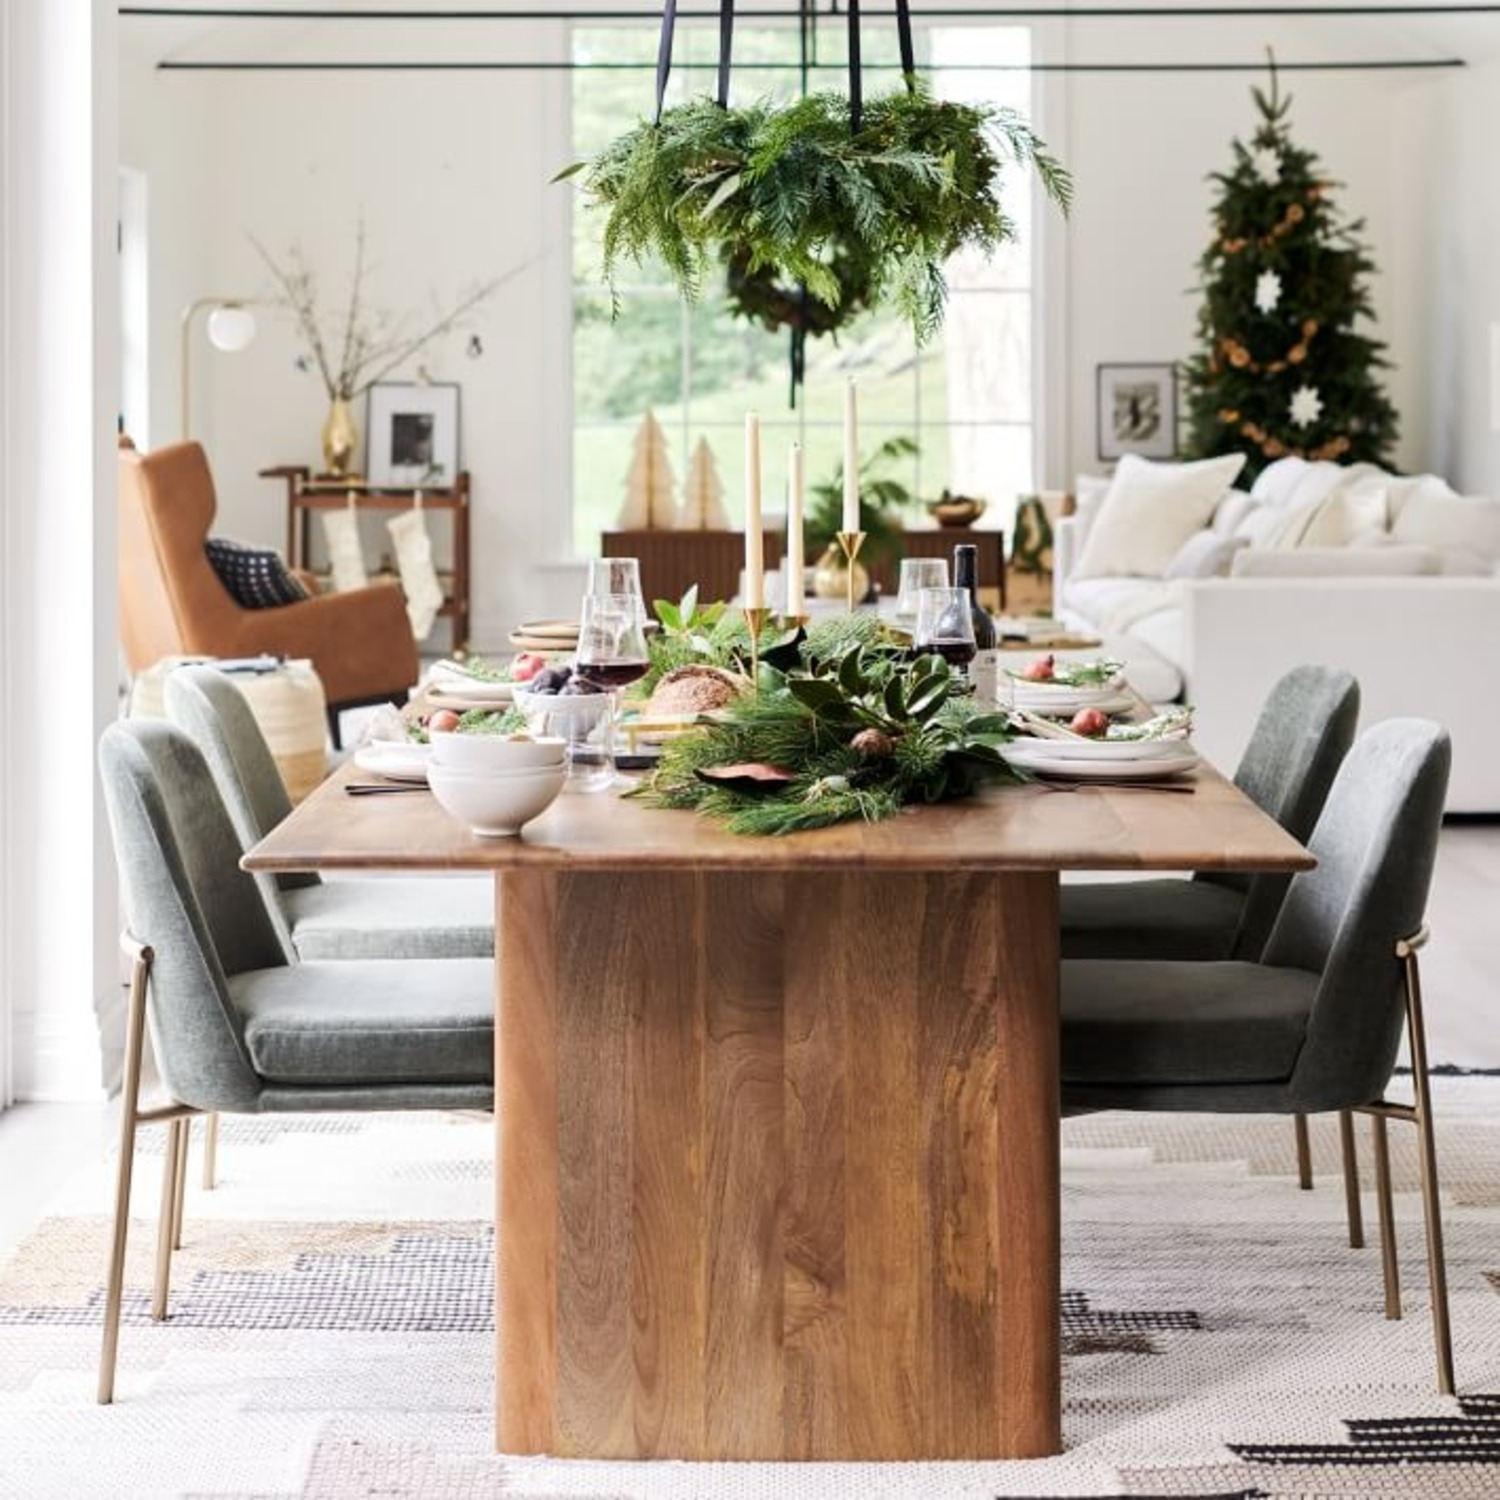 West Elm Anton Solid Wood Dining Table - image-2